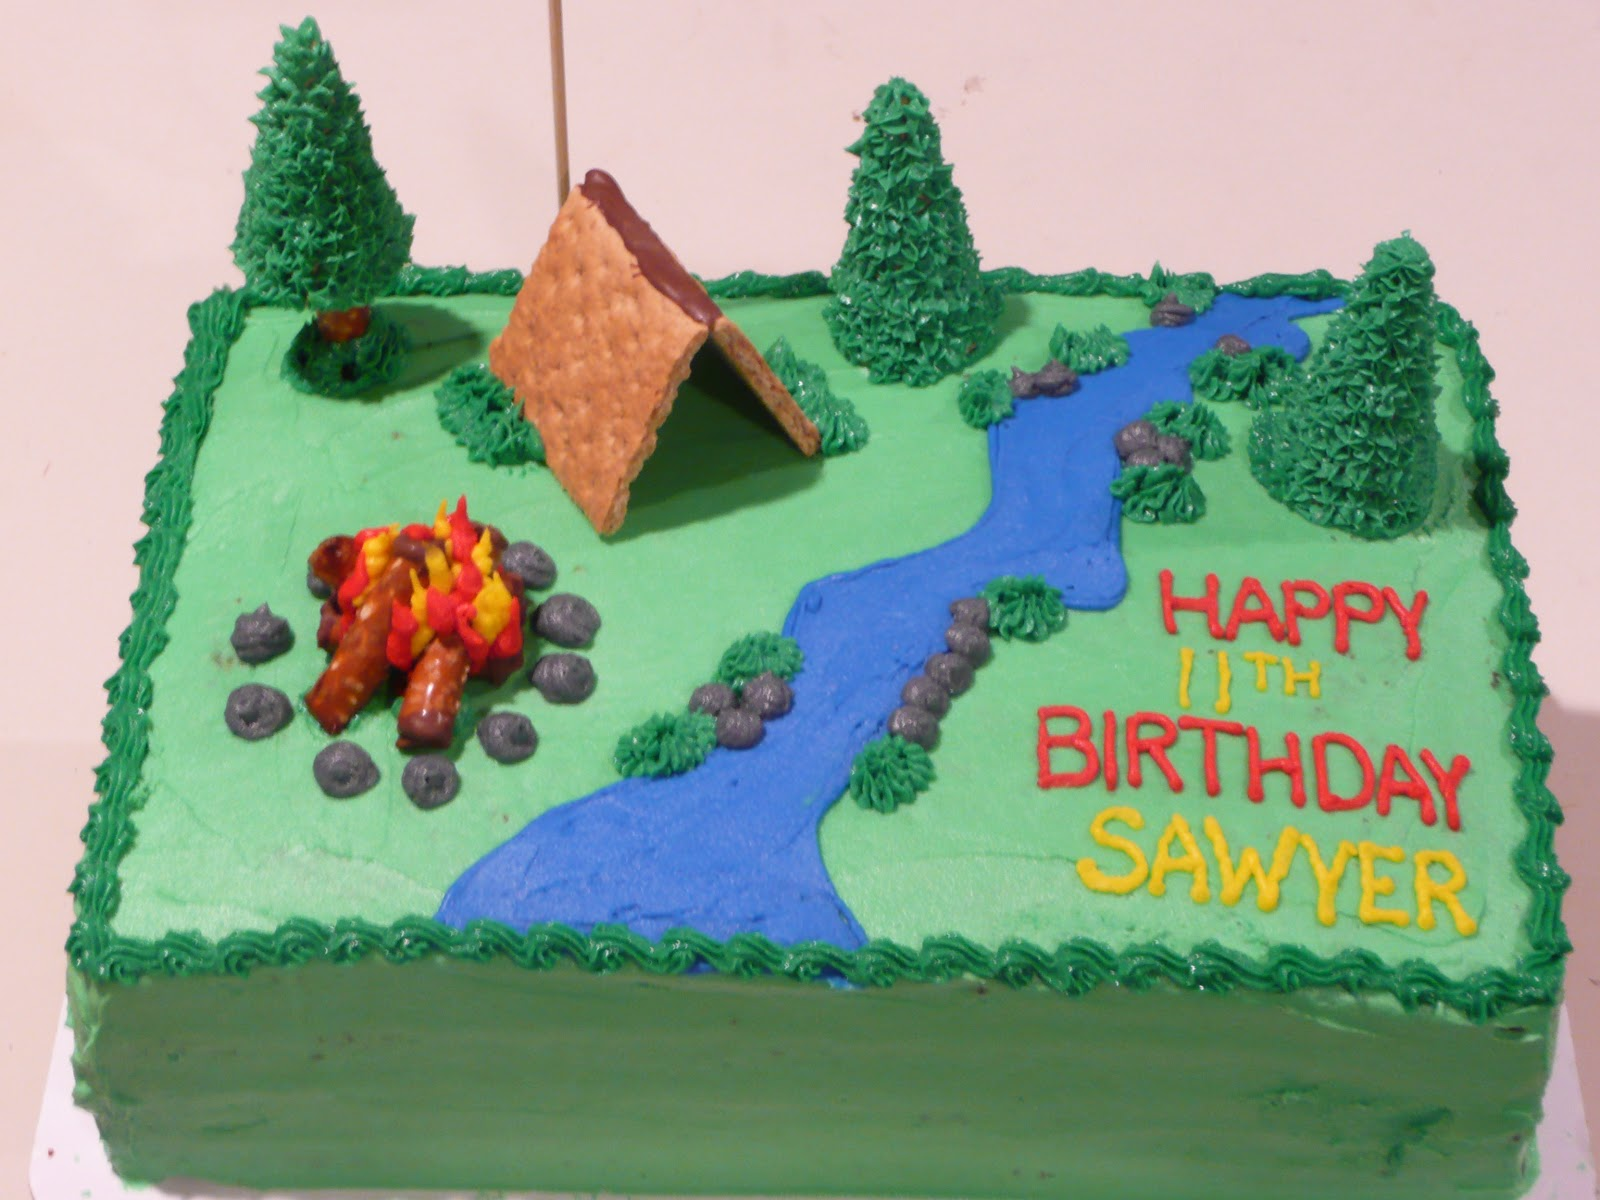 Boy Scout/C& Smores Cake & Desserts by Robin: Boy Scout/Camp Smores Cake